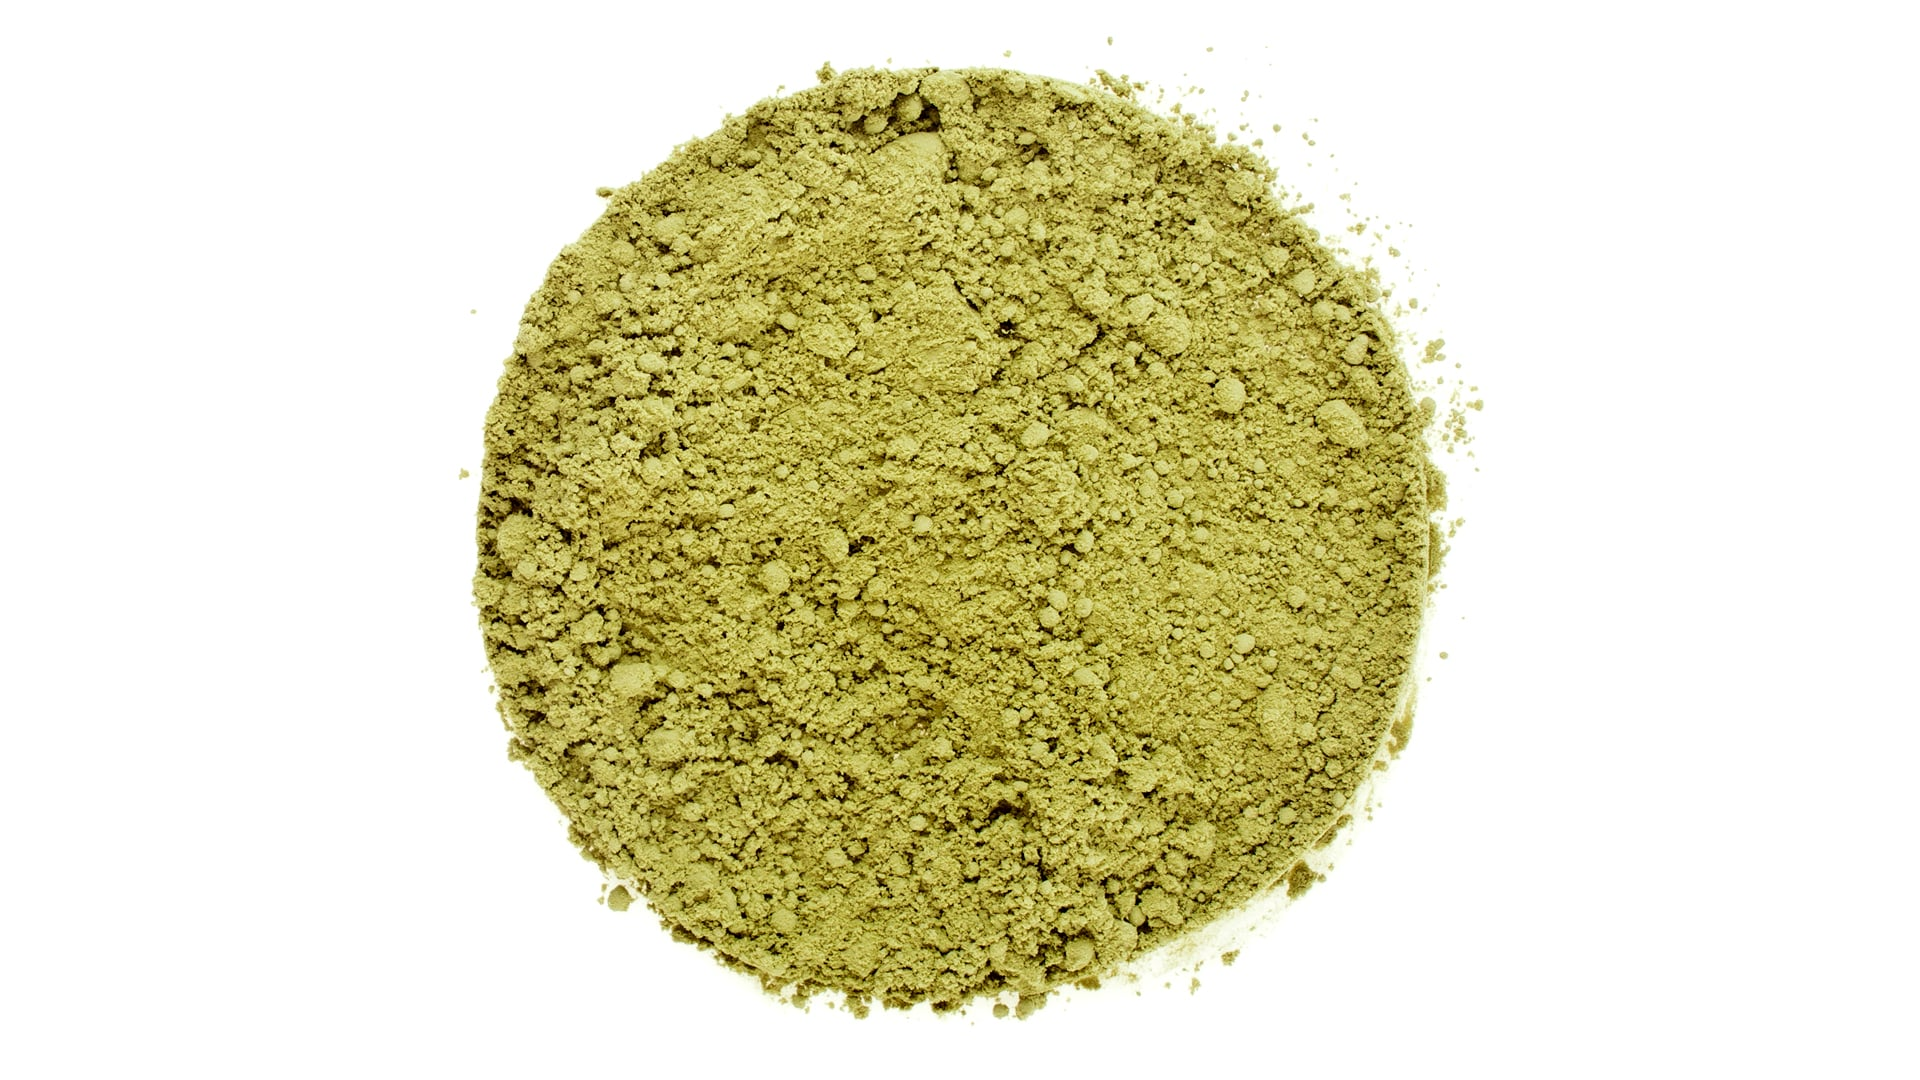 Green Vein Kratom Strains